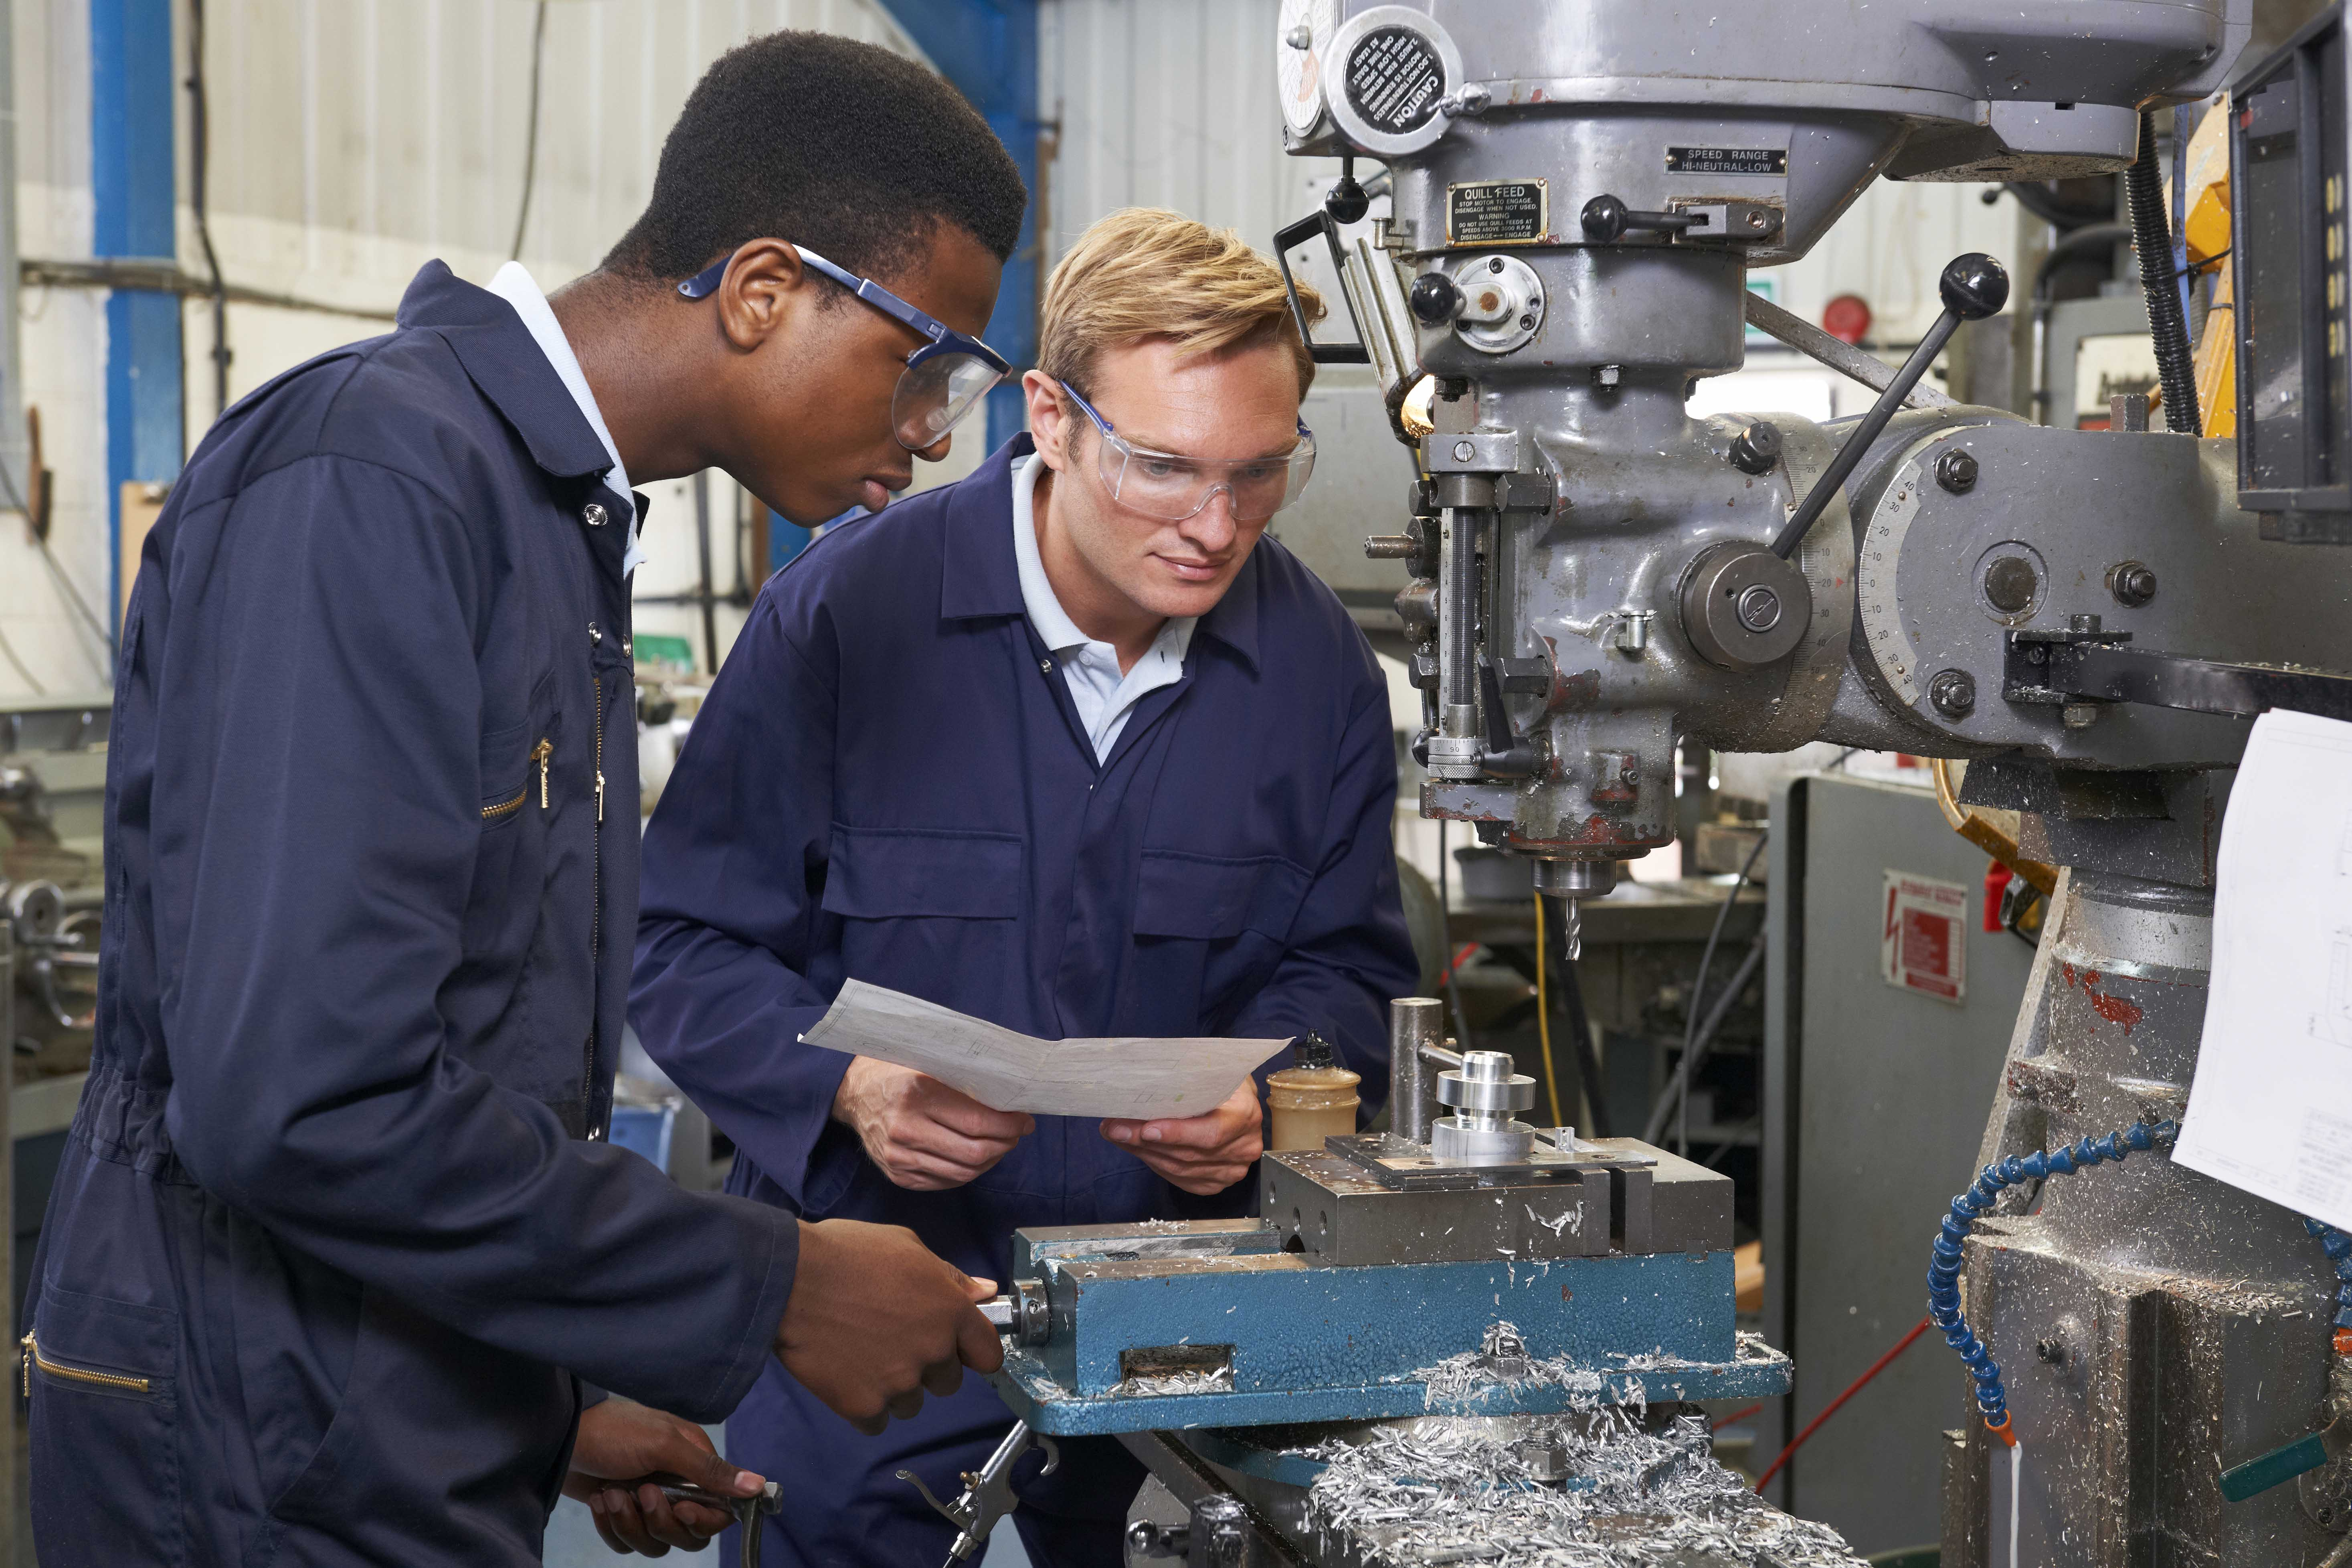 Industrial Training through the Business and Industry Center